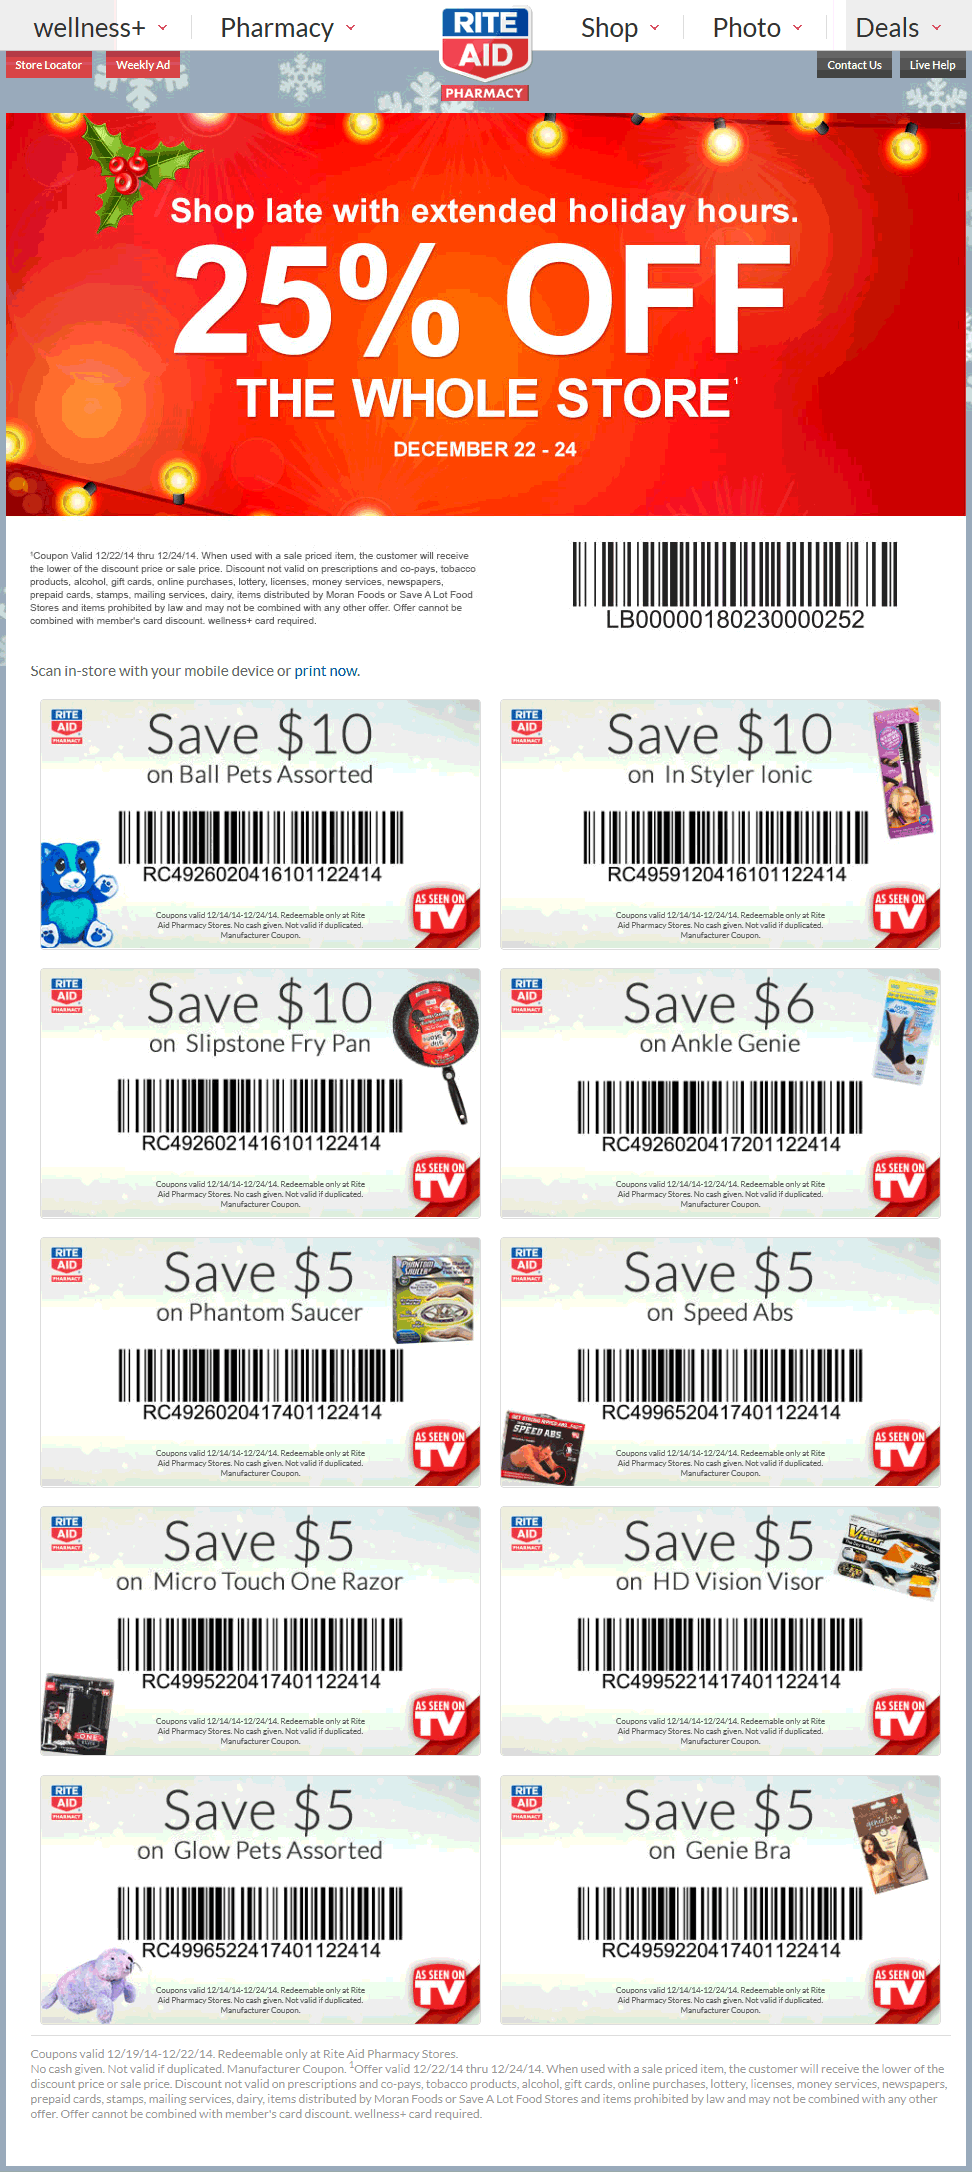 Rite Aid Coupon February 2017 25% off everything today at Rite Aid pharmacy